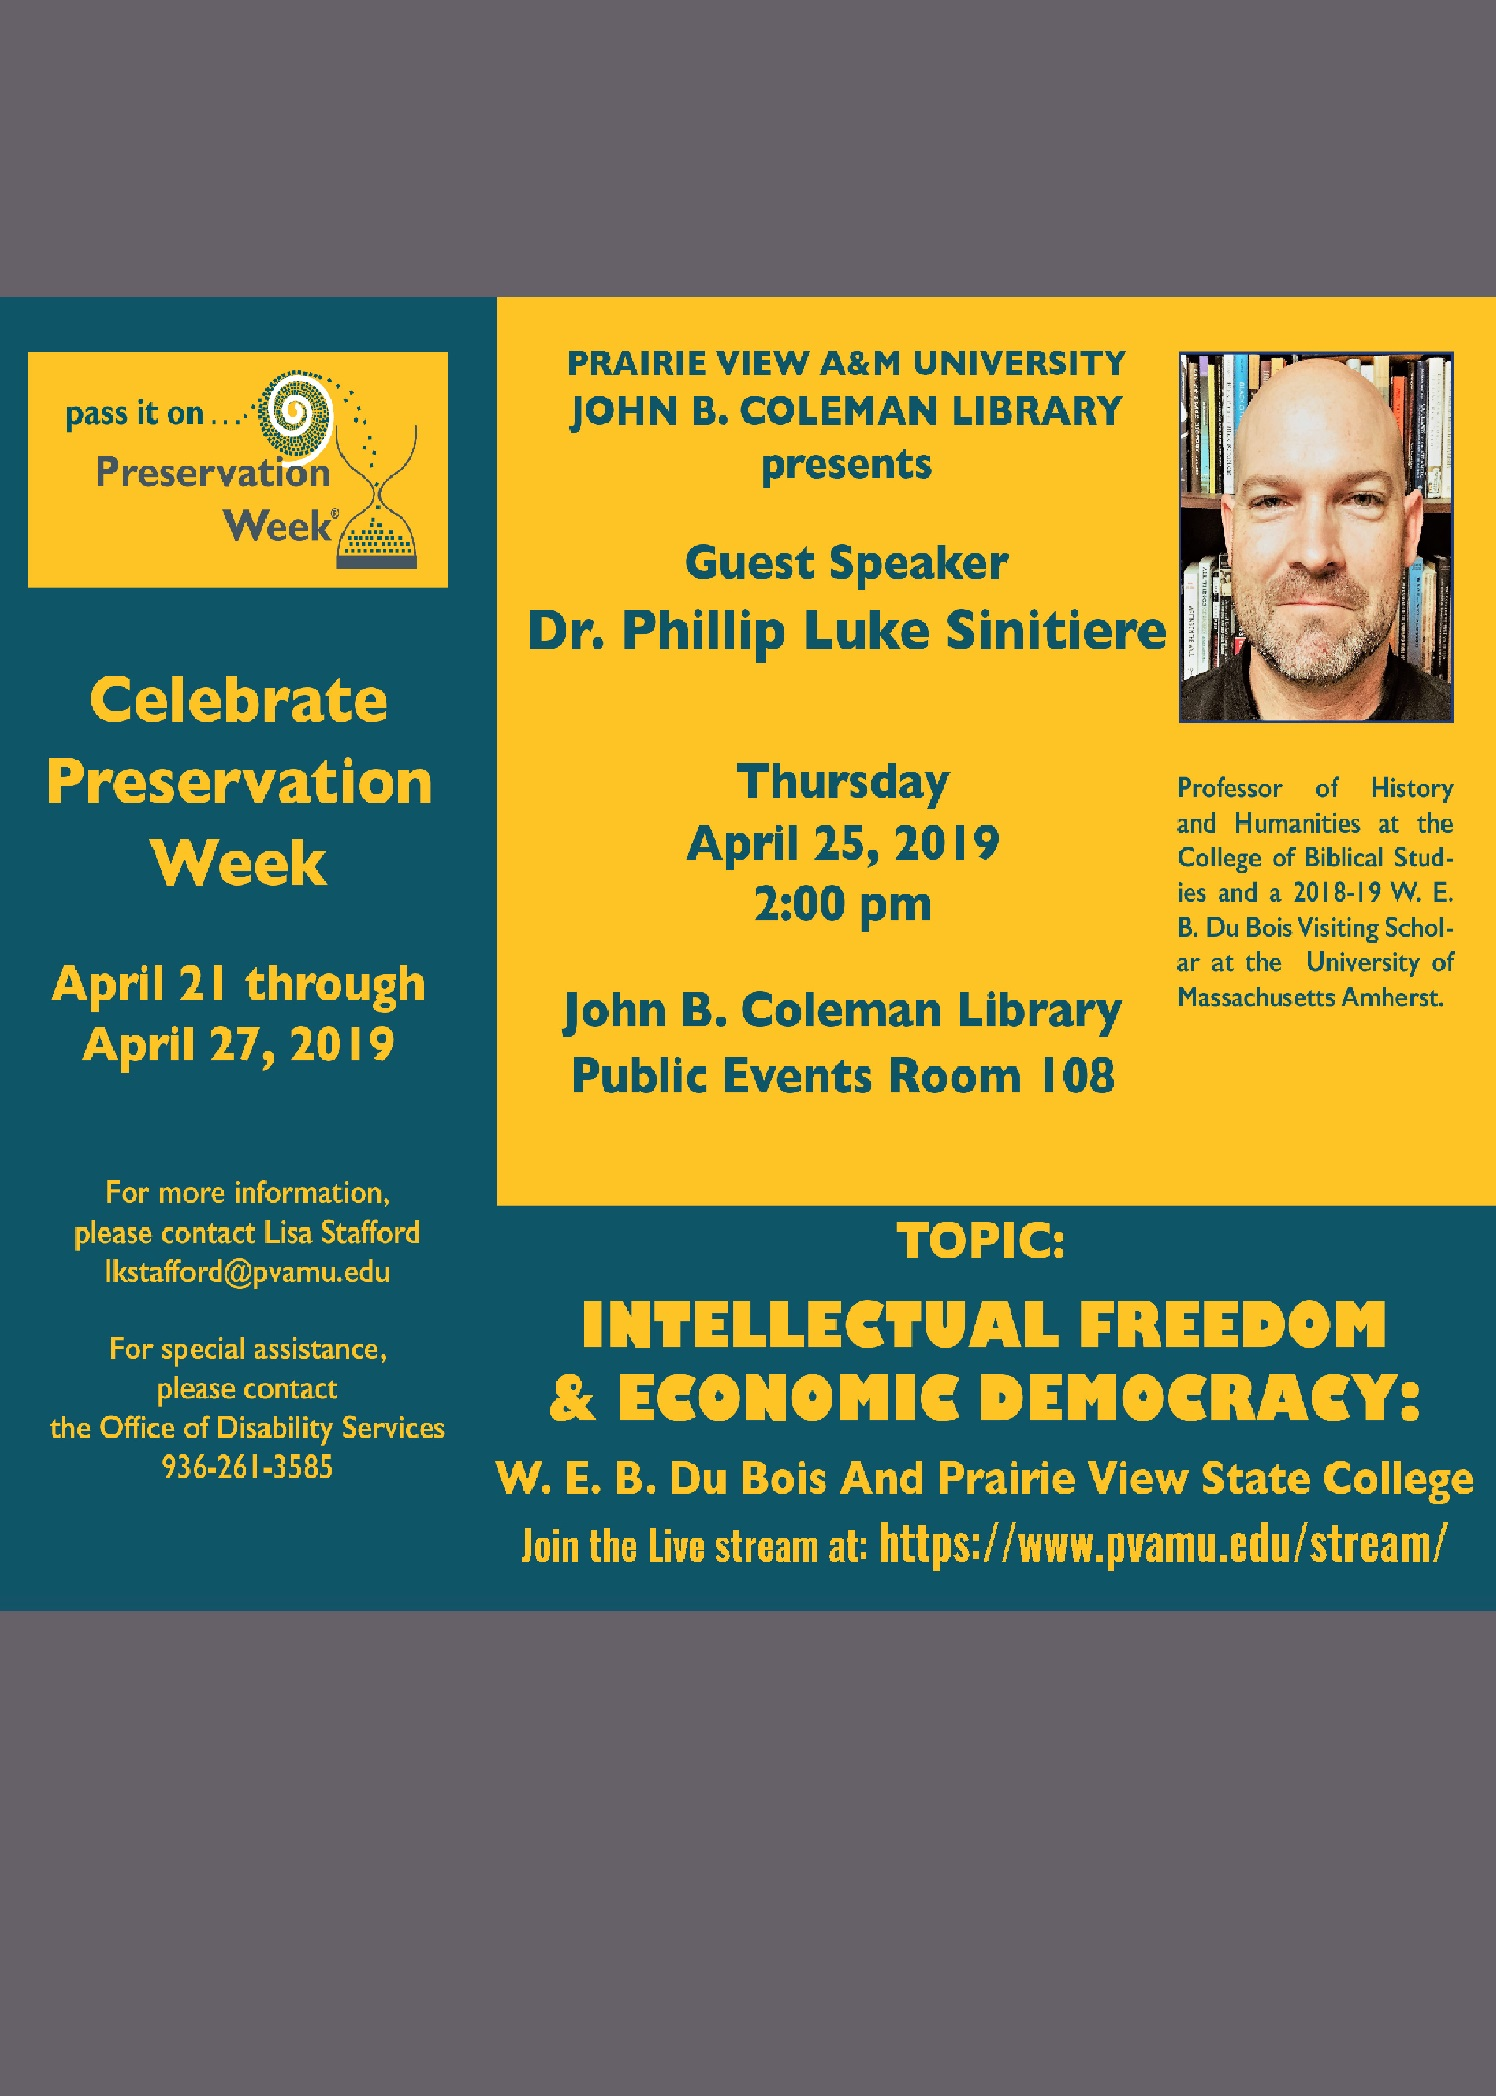 Preservation week lecture 4/25